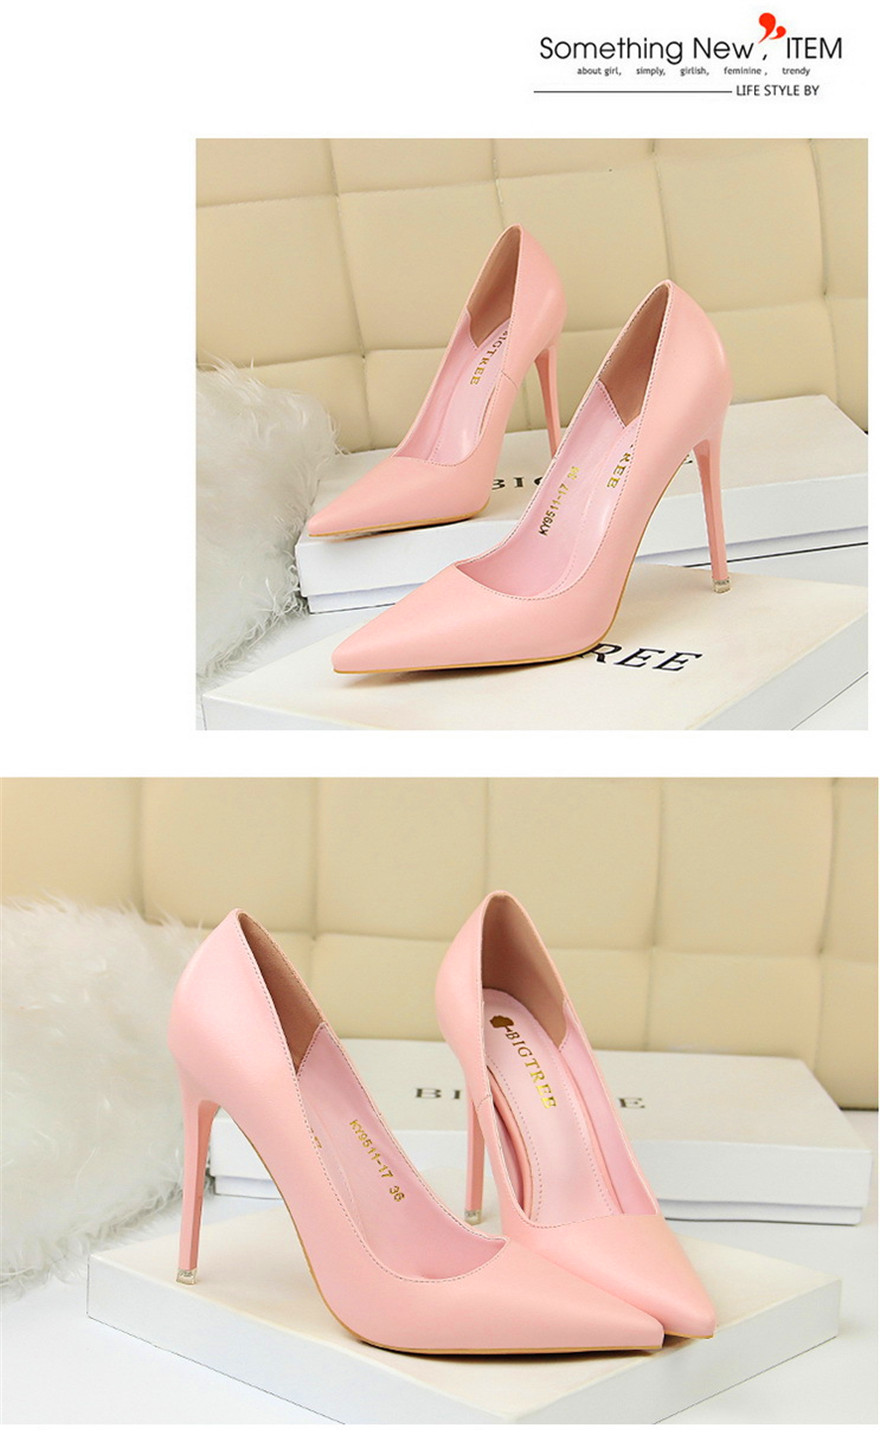 BIGTREE Soft Leather Shallow Fashion Women's High Heels Shoes Candy Colors Pointed Toe Women Pumps Show Thin Female Office Shoe 14